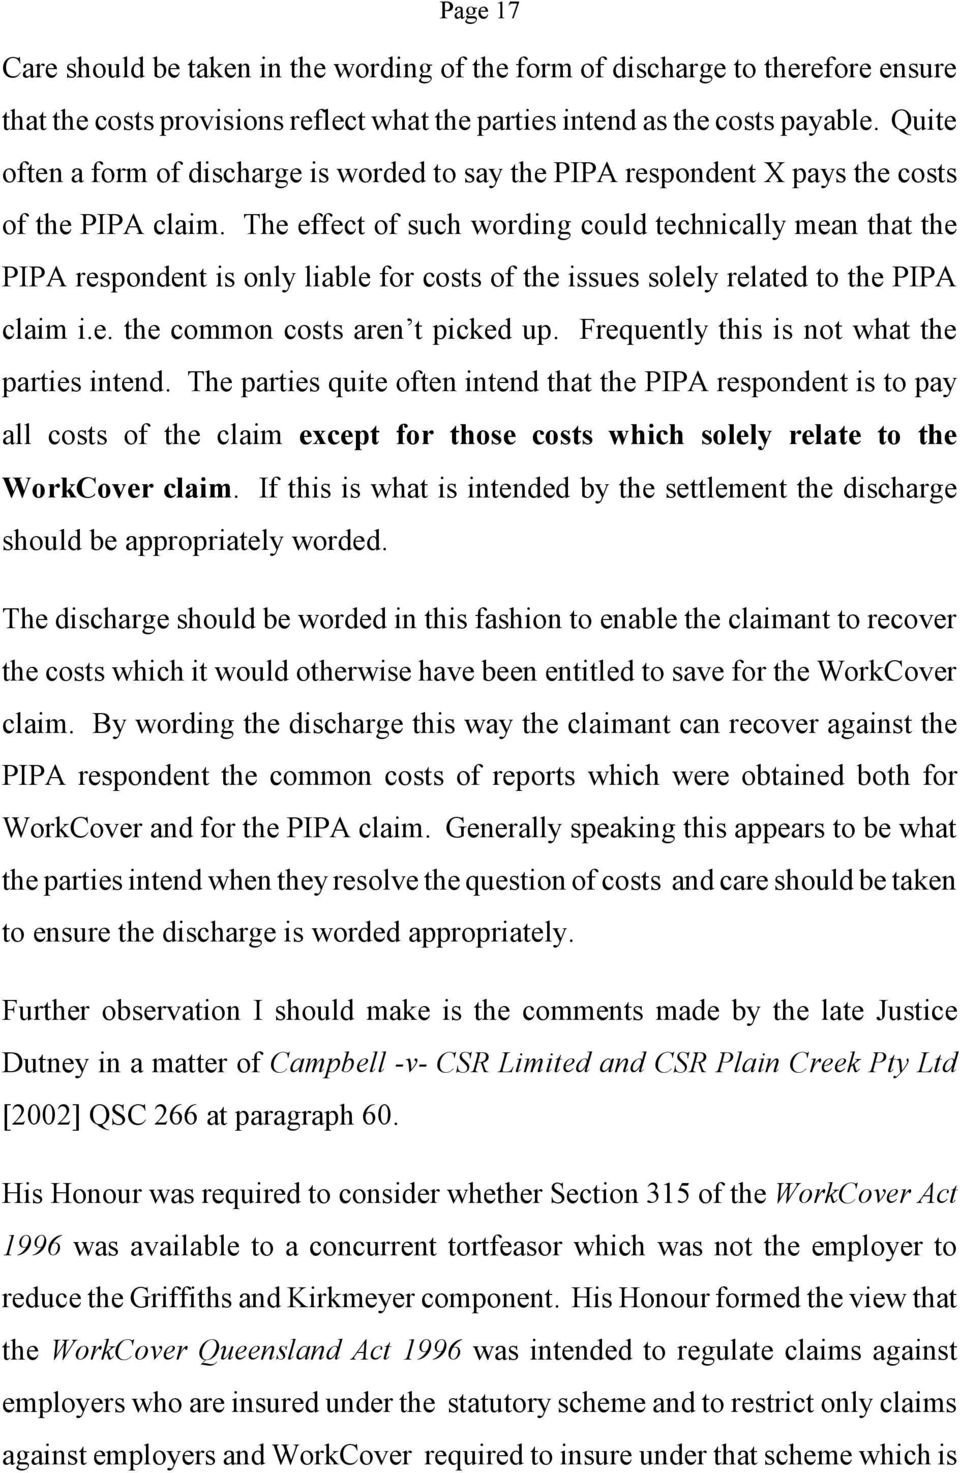 The effect of such wording could technically mean that the PIPA respondent is only liable for costs of the issues solely related to the PIPA claim i.e. the common costs aren t picked up.